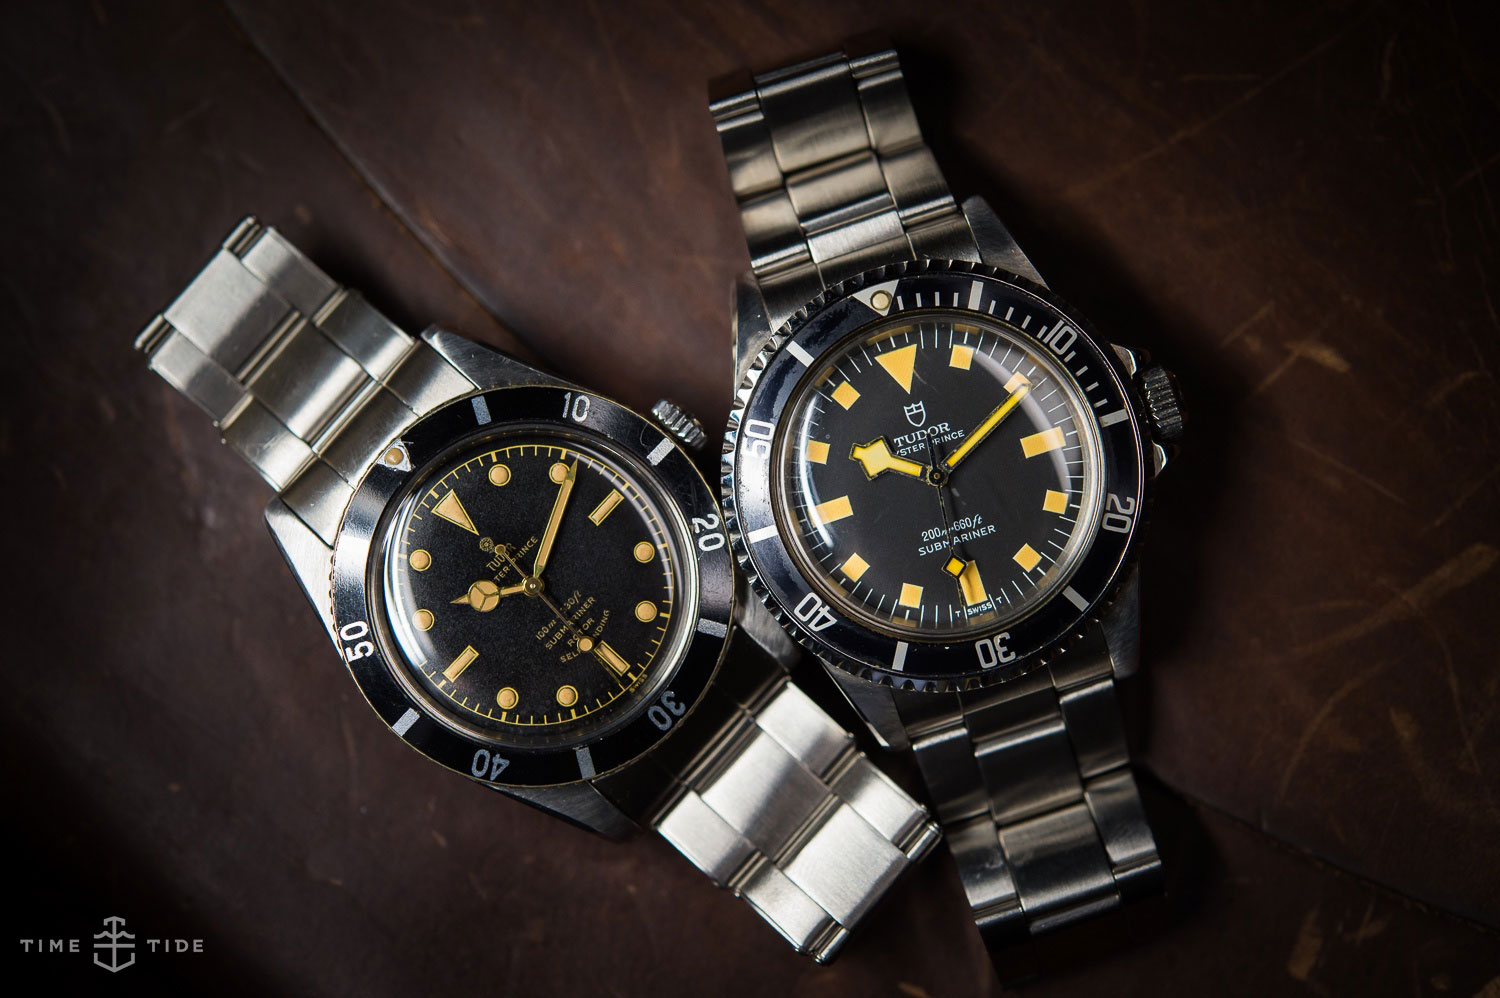 HOW TO: Build a potentially profitable vintage watch collection with a budget of $3000-$12000 per piece